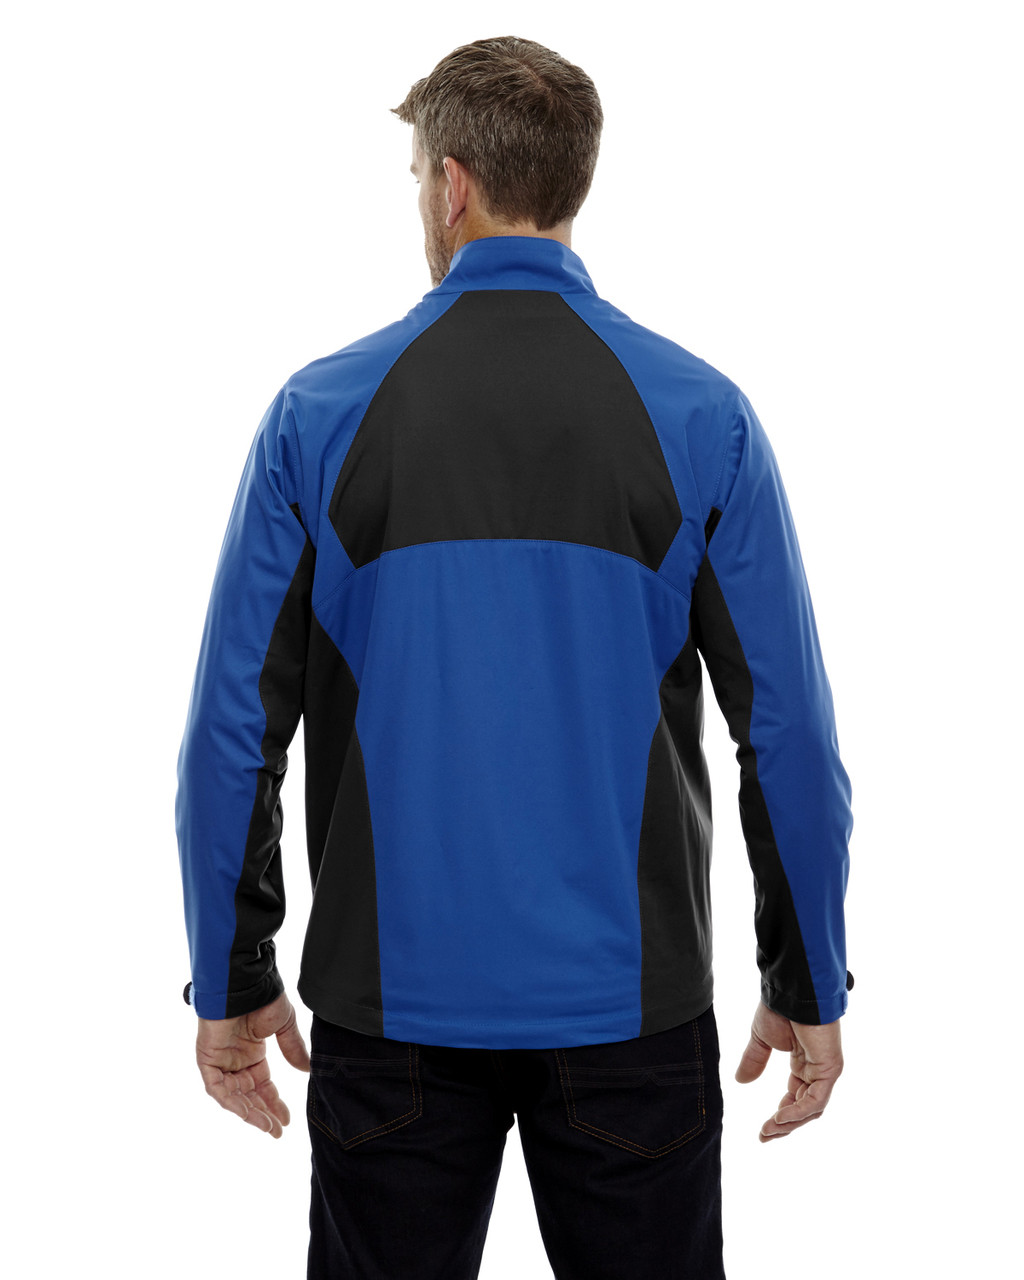 Nautical Blue-back 88656 North End Sport Red Laminated Performance Stretch Wind Shirt